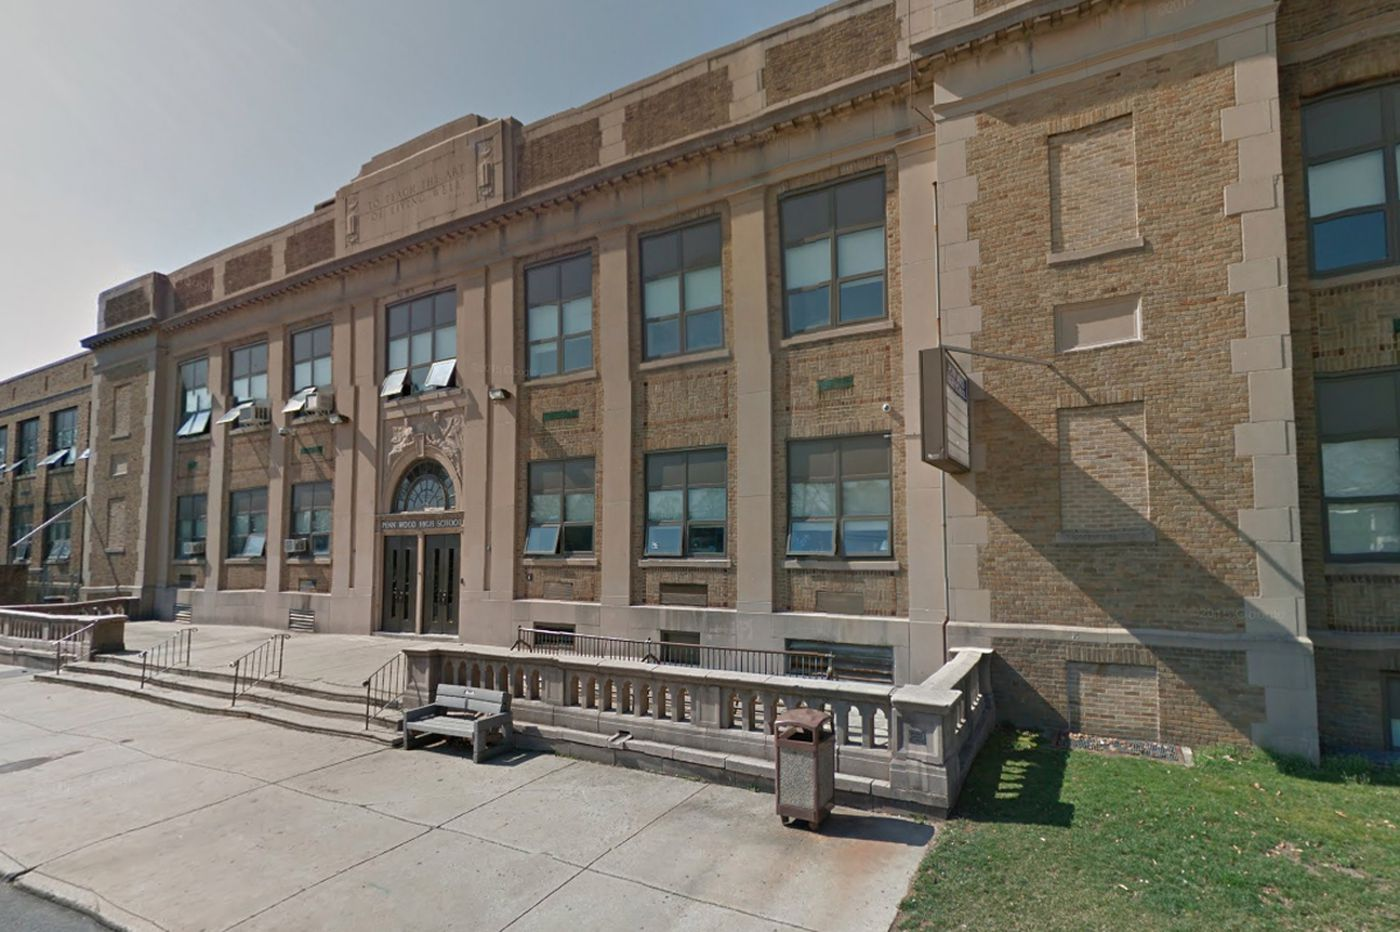 In William Penn schools, a season of struggle with no end in sight